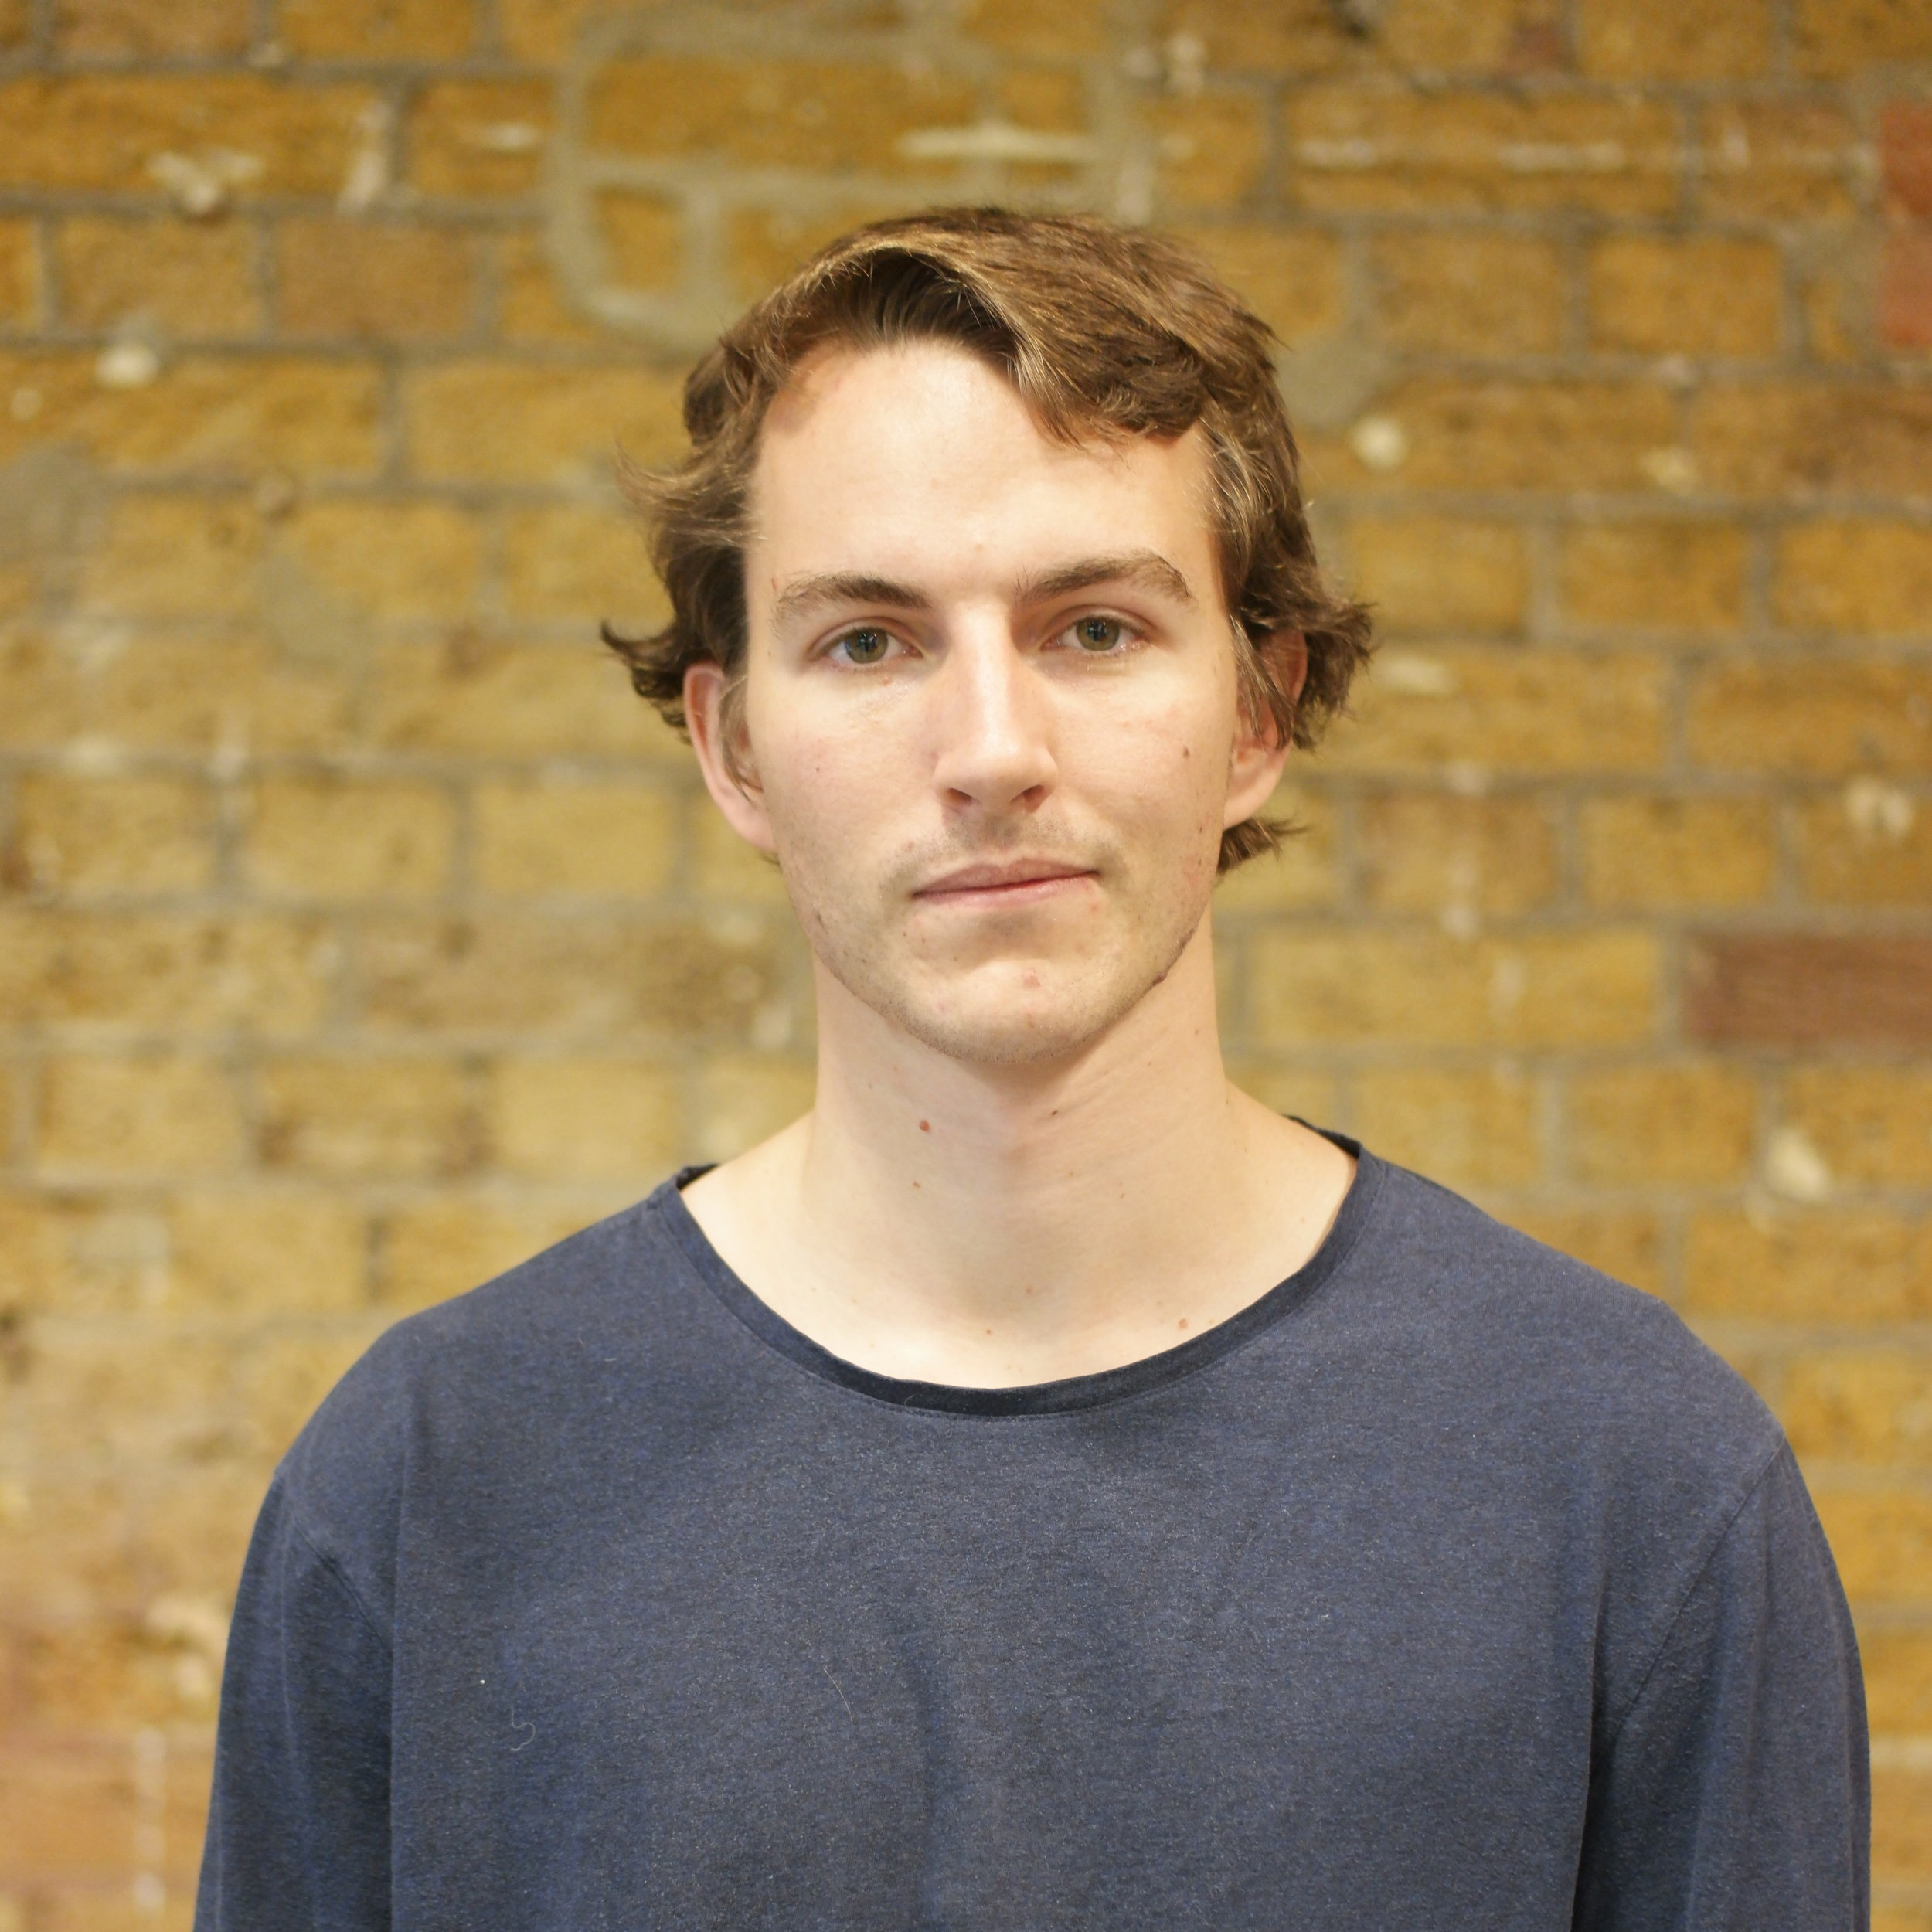 Sam Willis     Sam is an expert in building hardware systems and received his MEng from the University of Cambridge in 2018. His key experience in photonics and power system design is crucial for the overall hardware system design. He has gained vital industry experience at companies such as Cambridge Bio-Augmentation Systems and the Centre for Advanced Photonics and Electronics (CAPE) at the University of Cambridge.